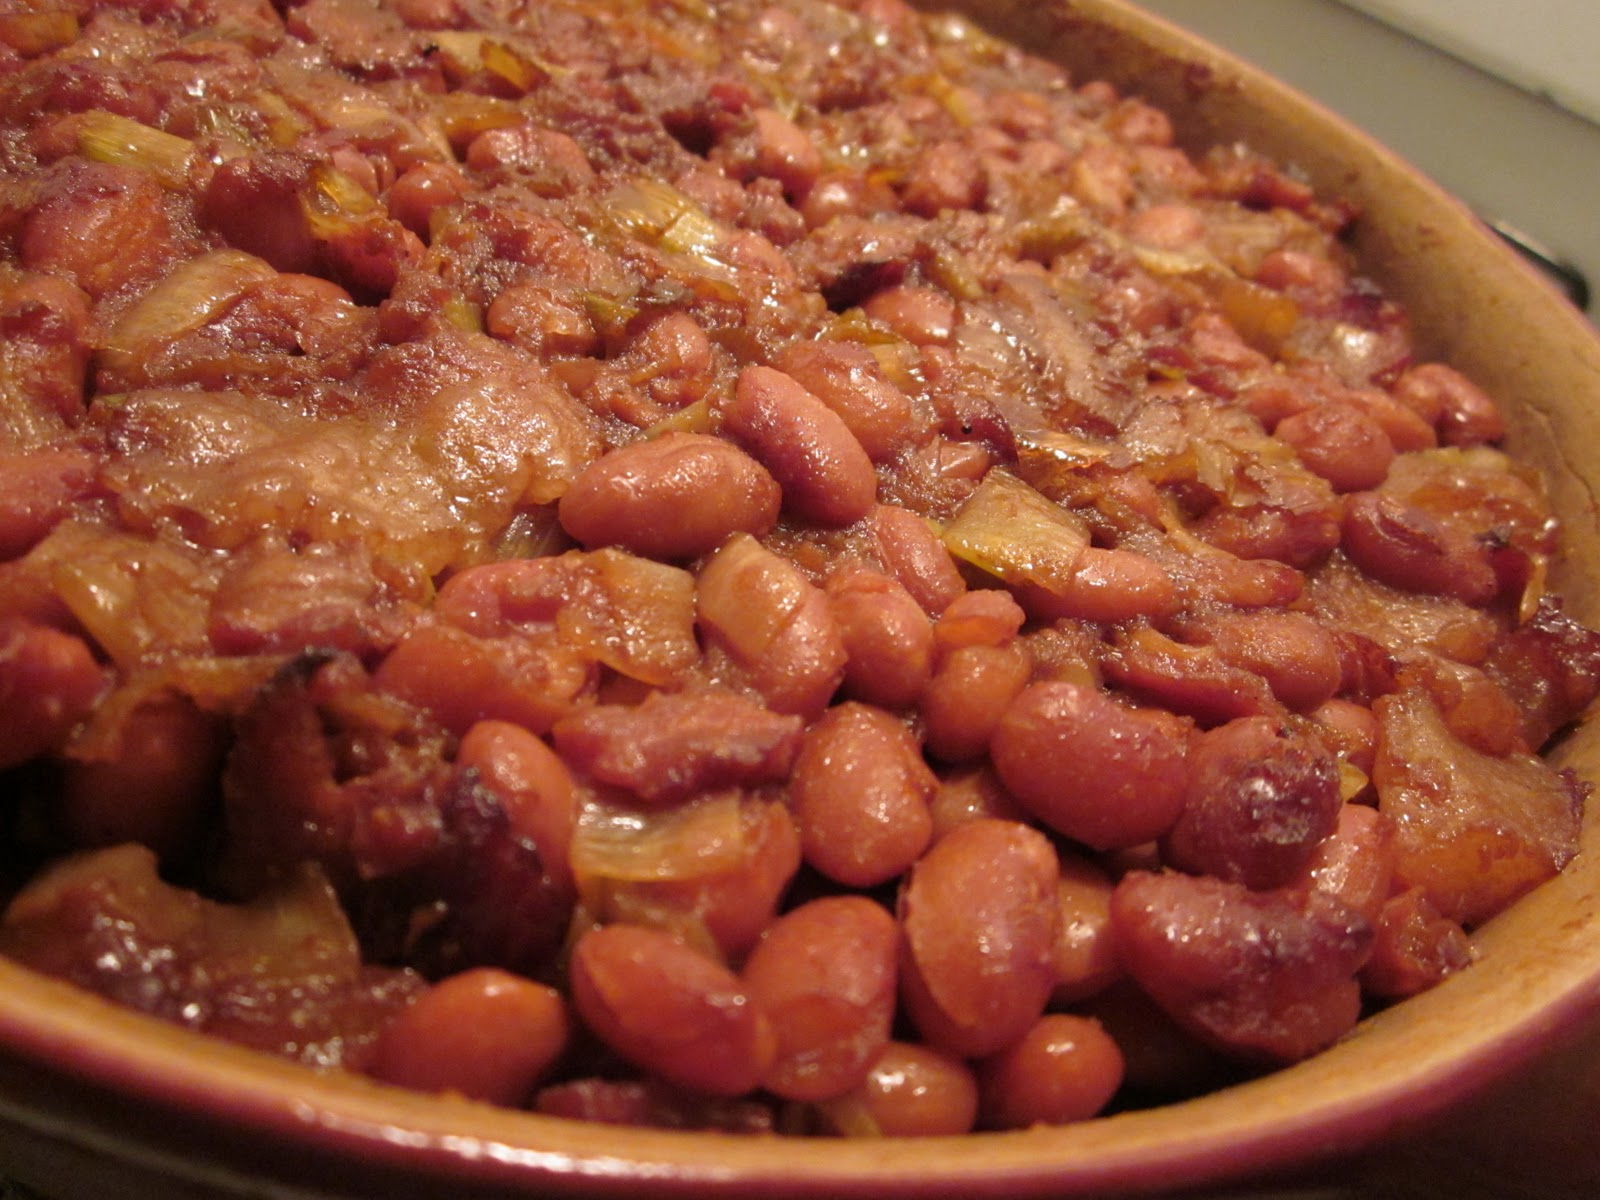 ... baked beans before but starting with the best baked beans ever recipe